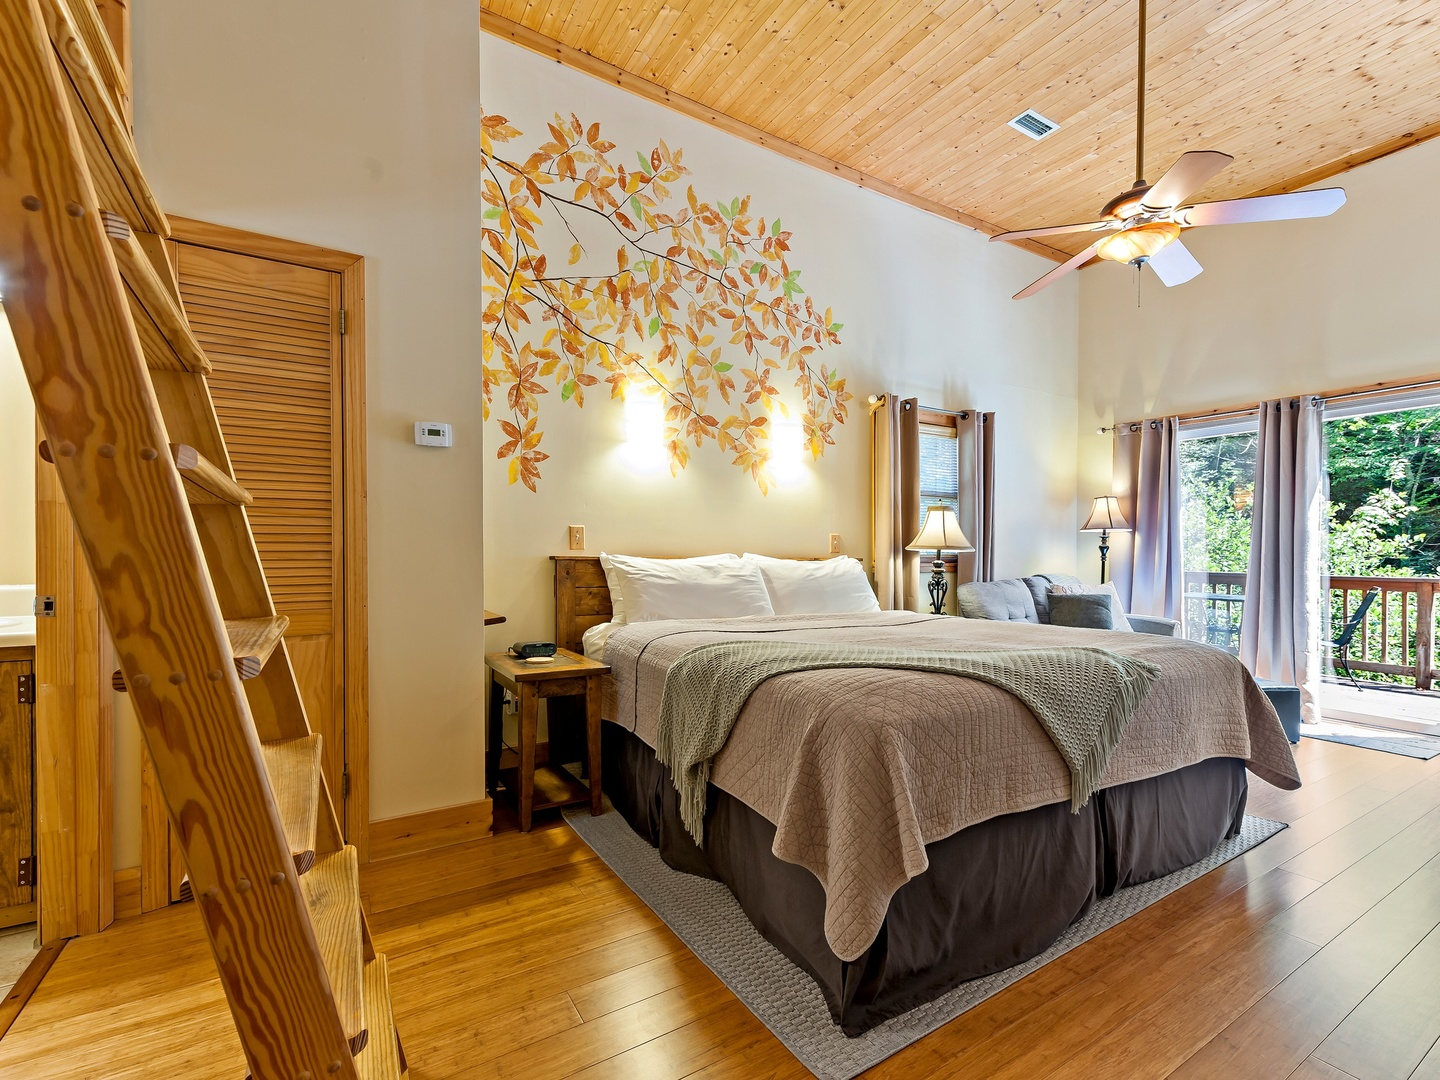 A bedroom with a large bed in a room at Inn on Mill Creek.